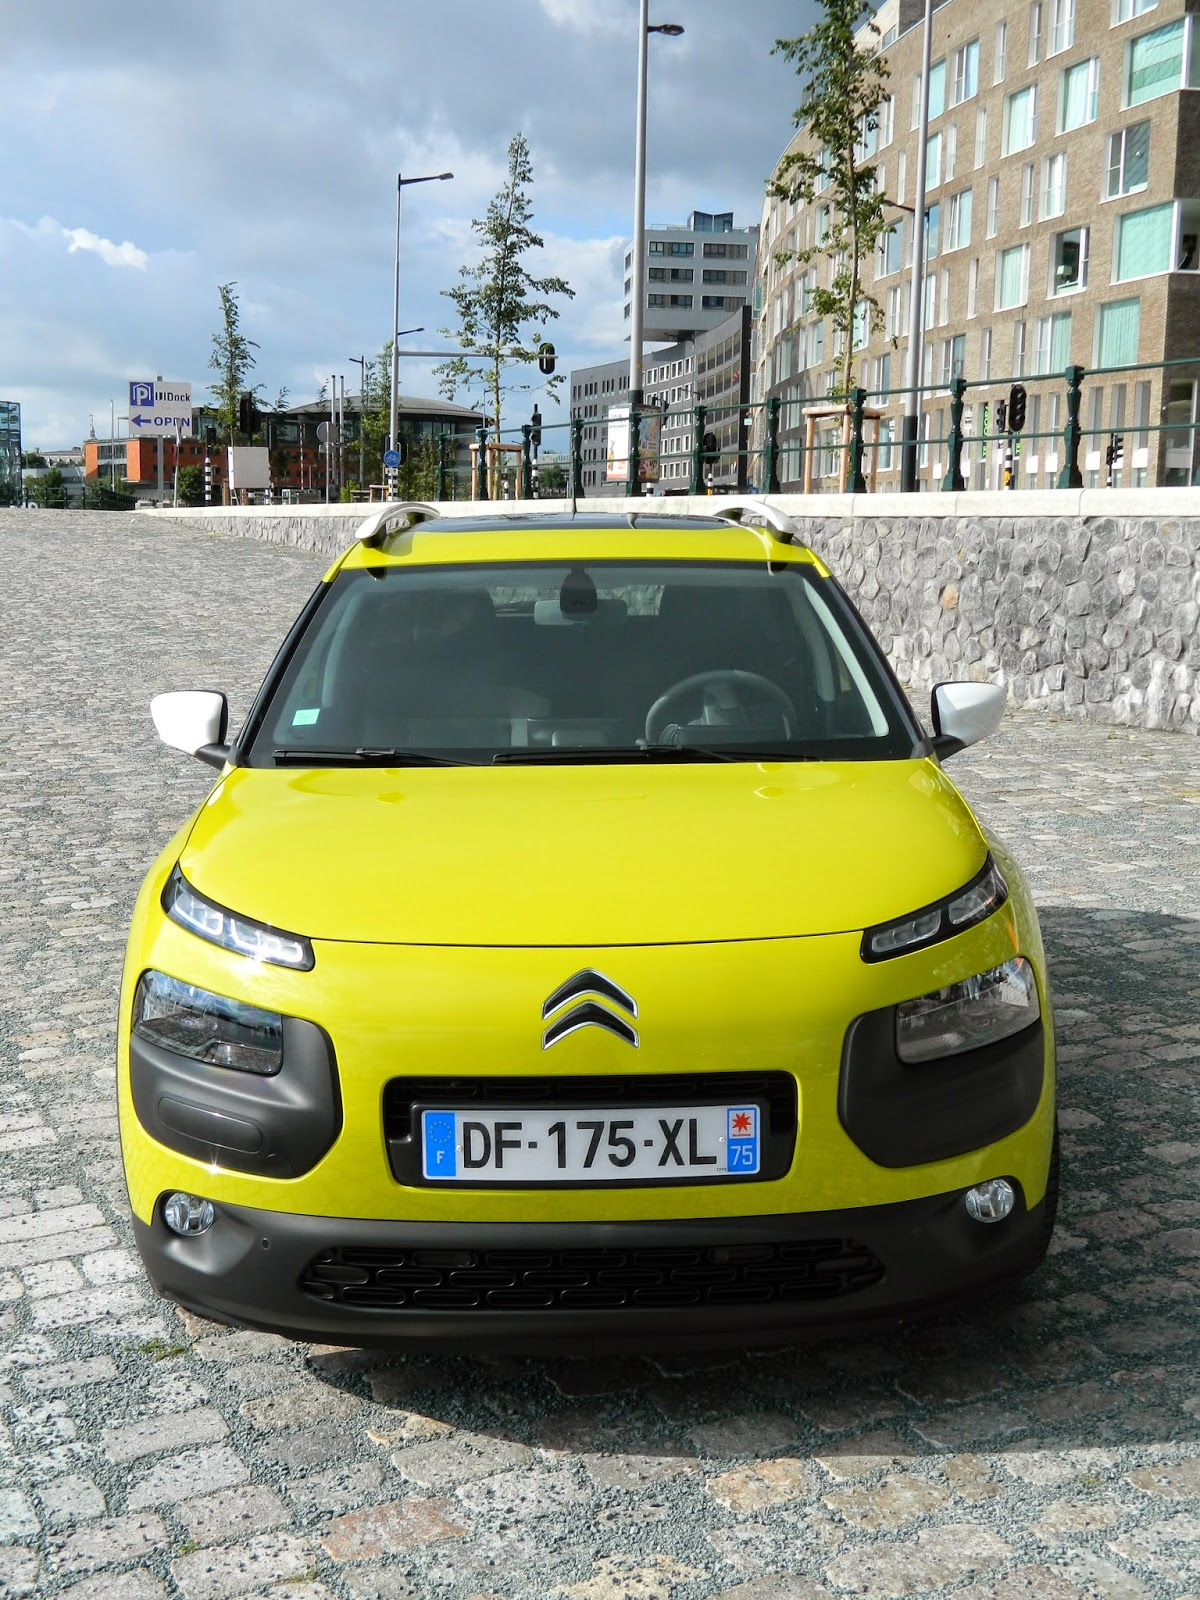 Citroen C4 Cactus from the front